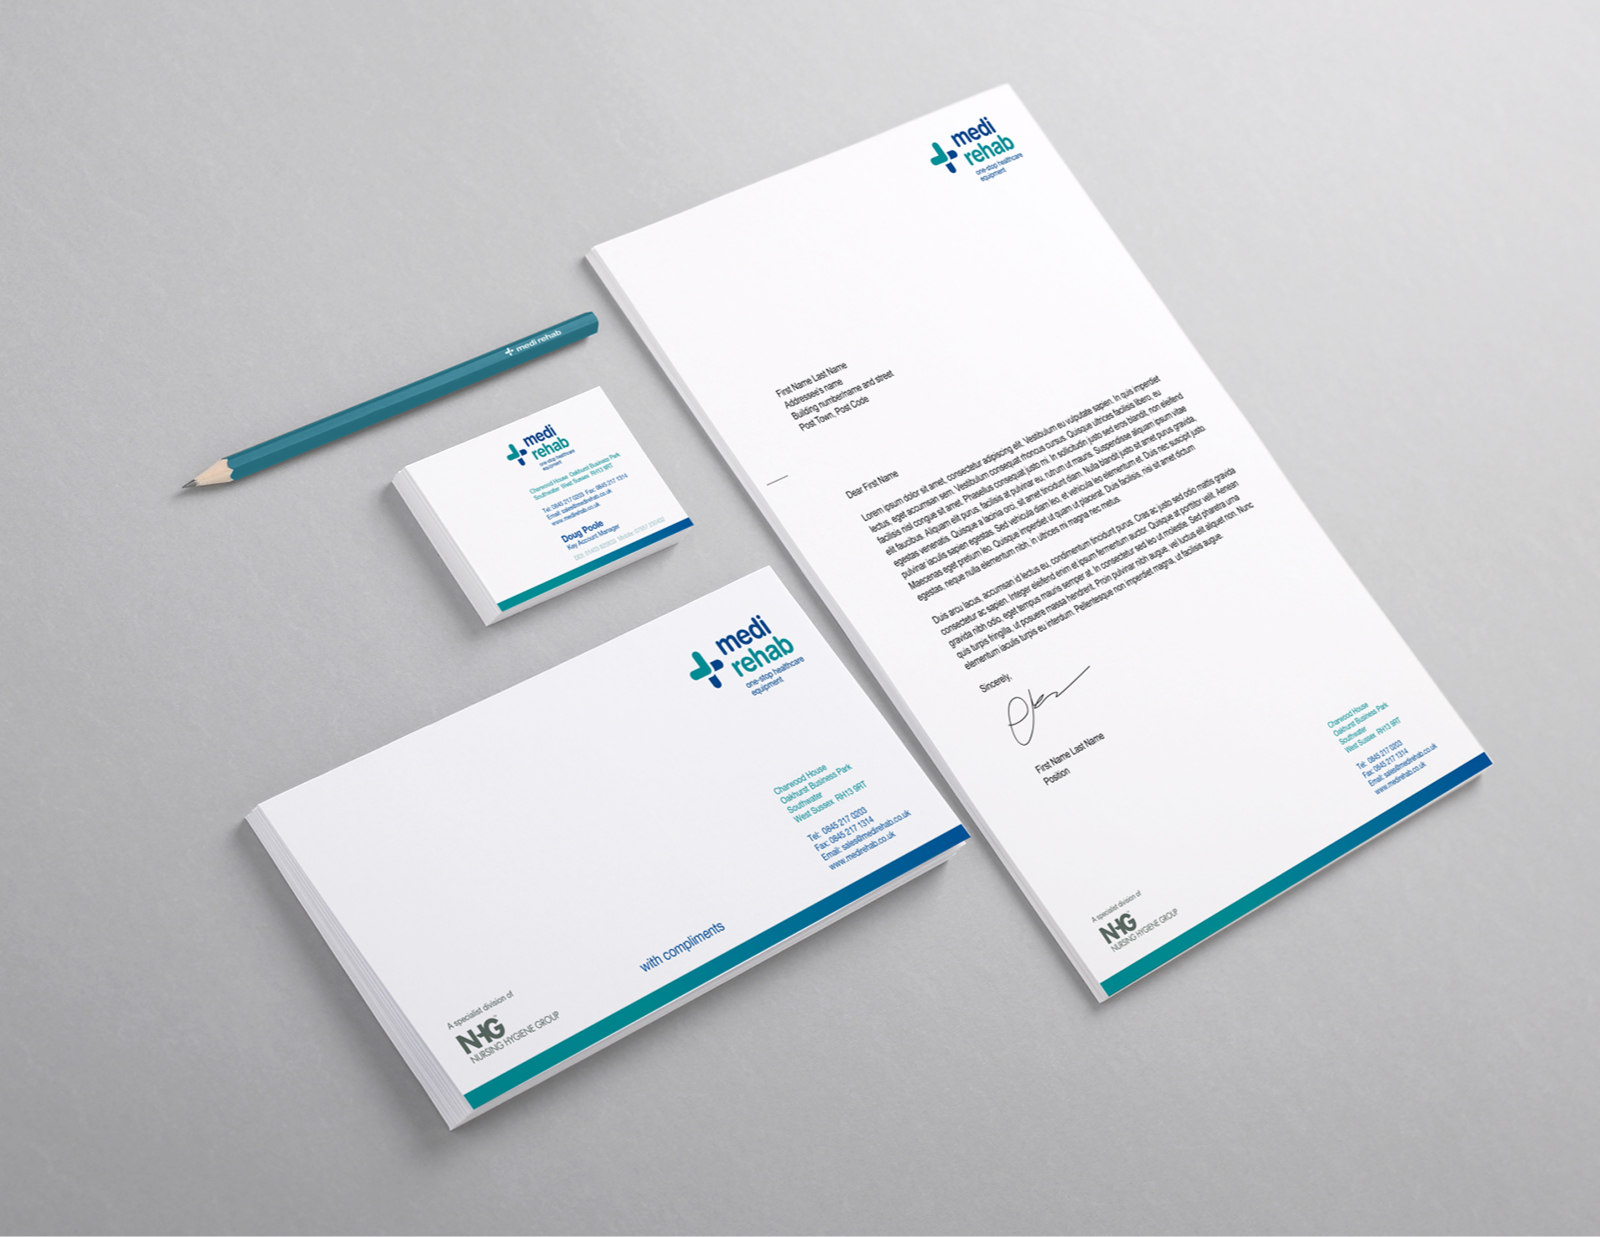 medical and heathcare branding the great field north devon